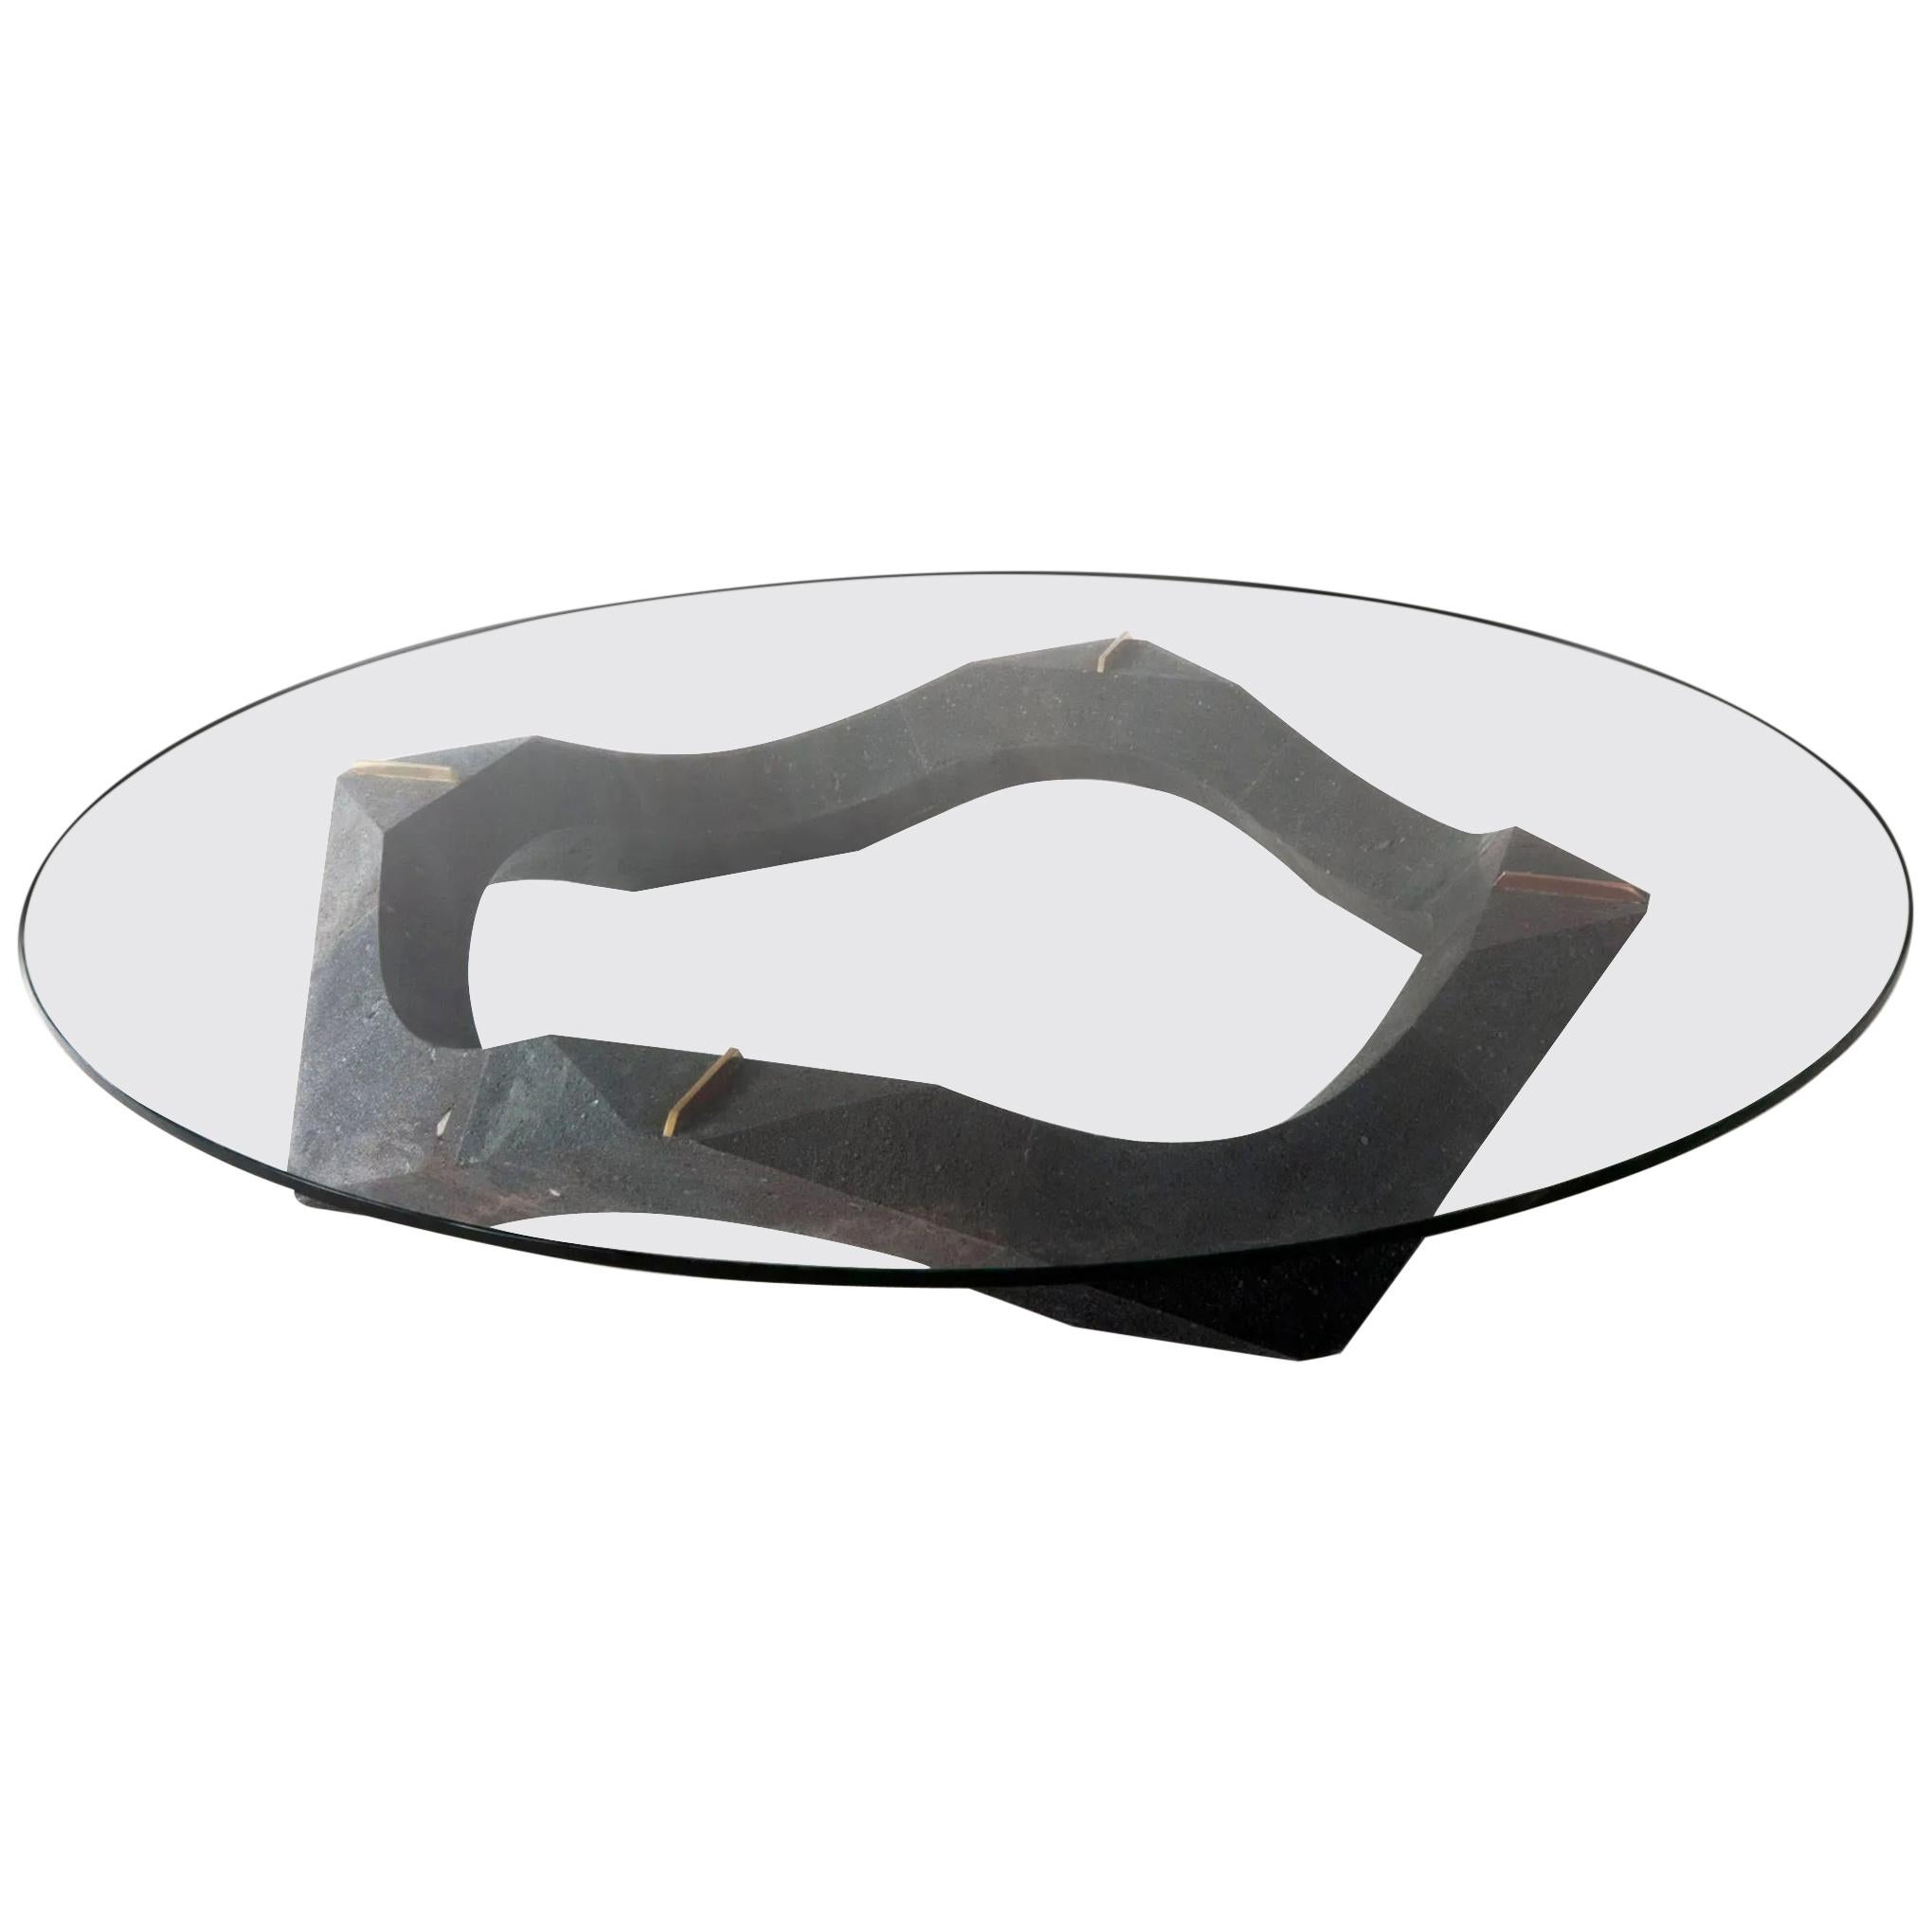 Contemporary Lava Stone and Glass Center Table from Mexico City